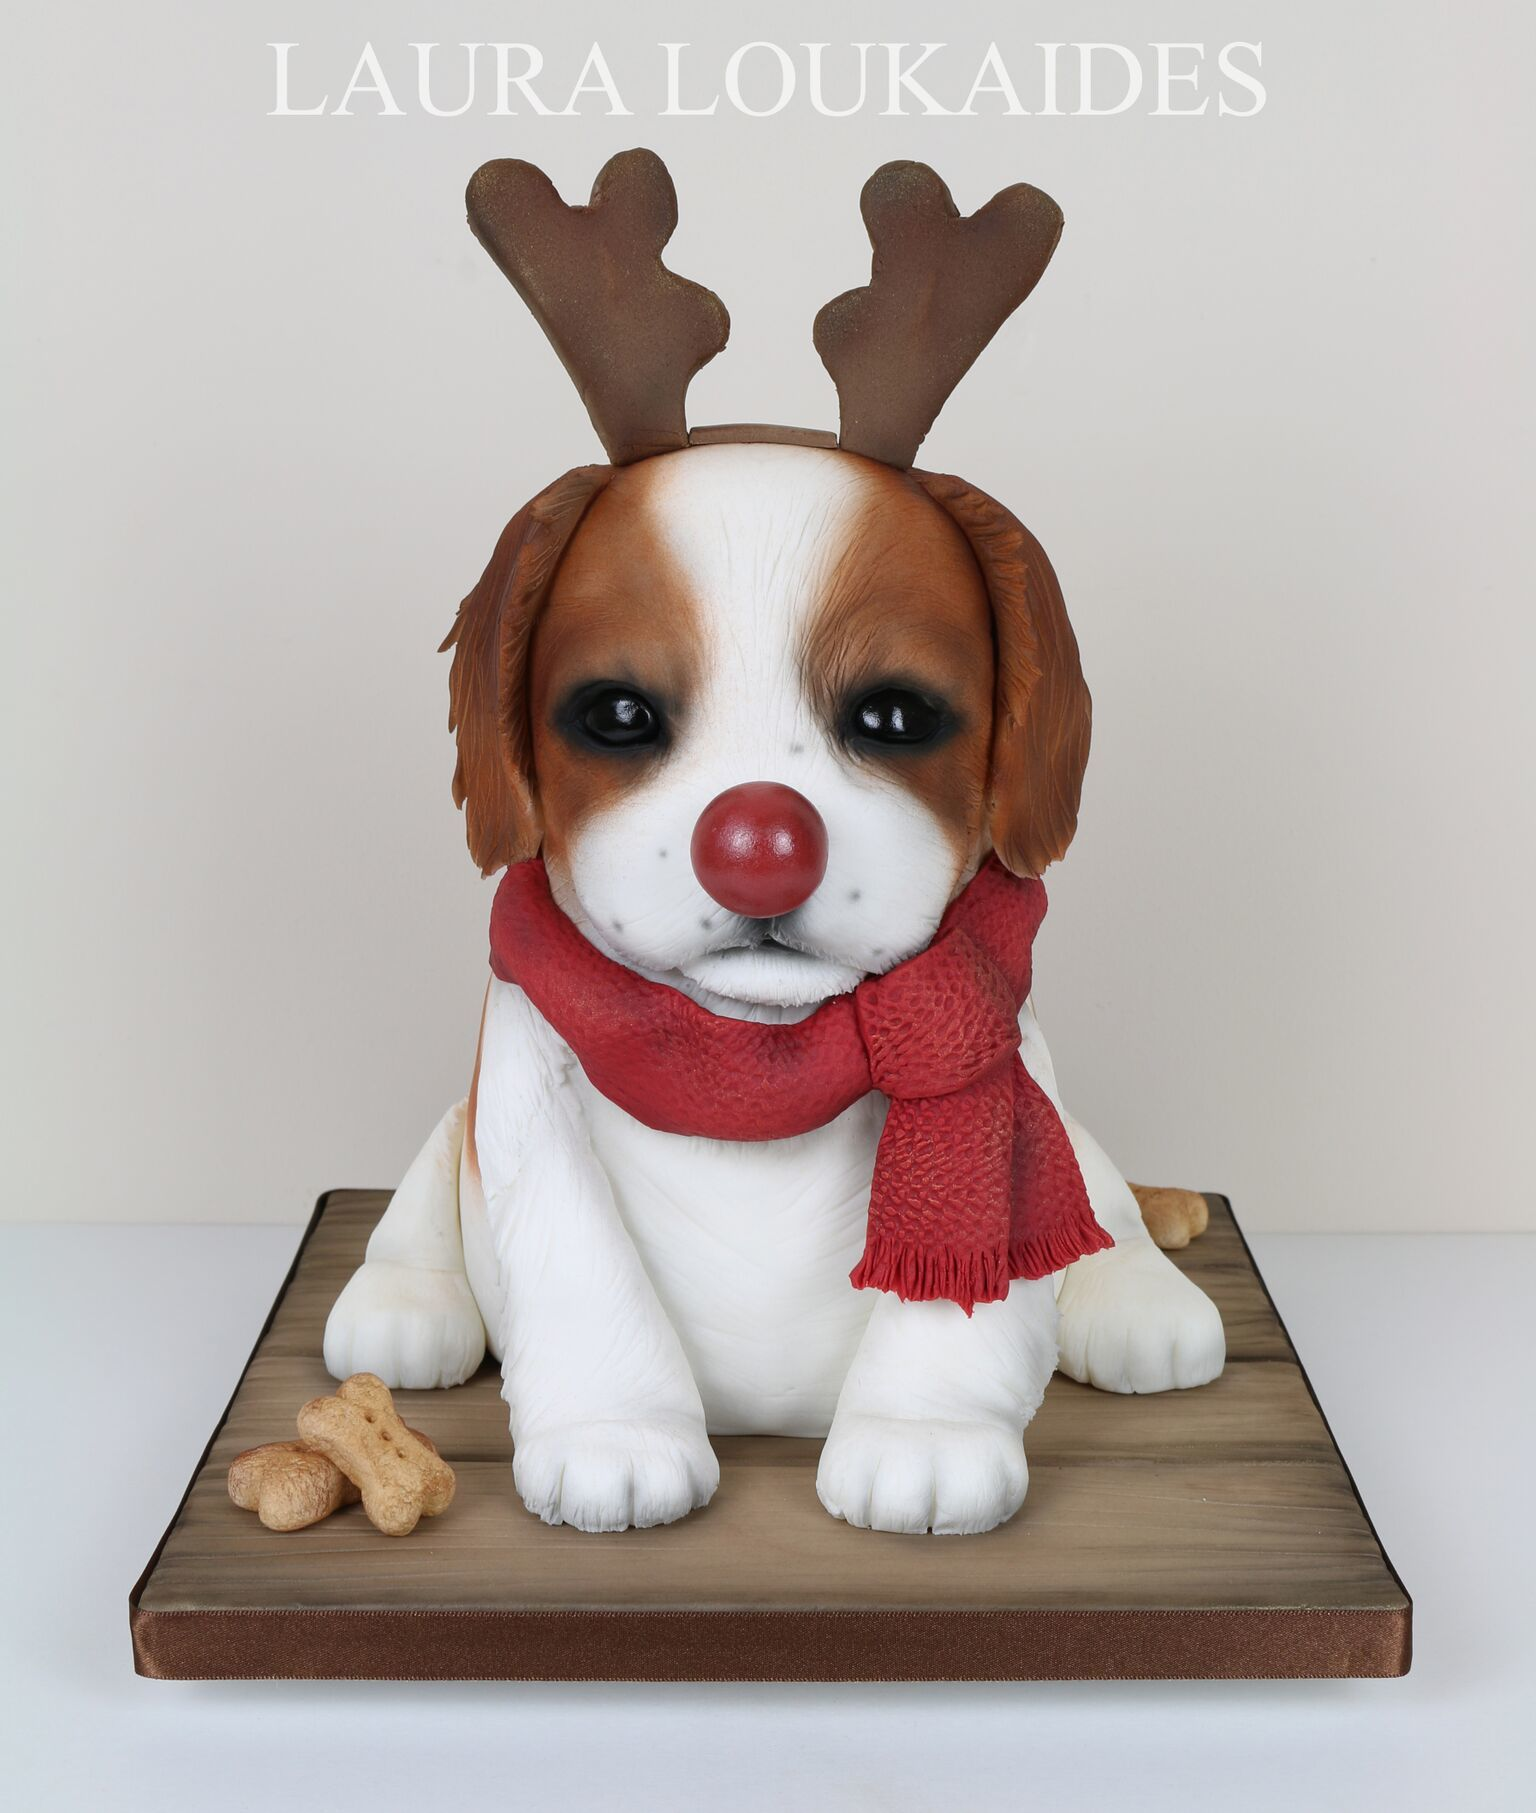 Sculpted Puppy with Reindeer Nose & Antlers